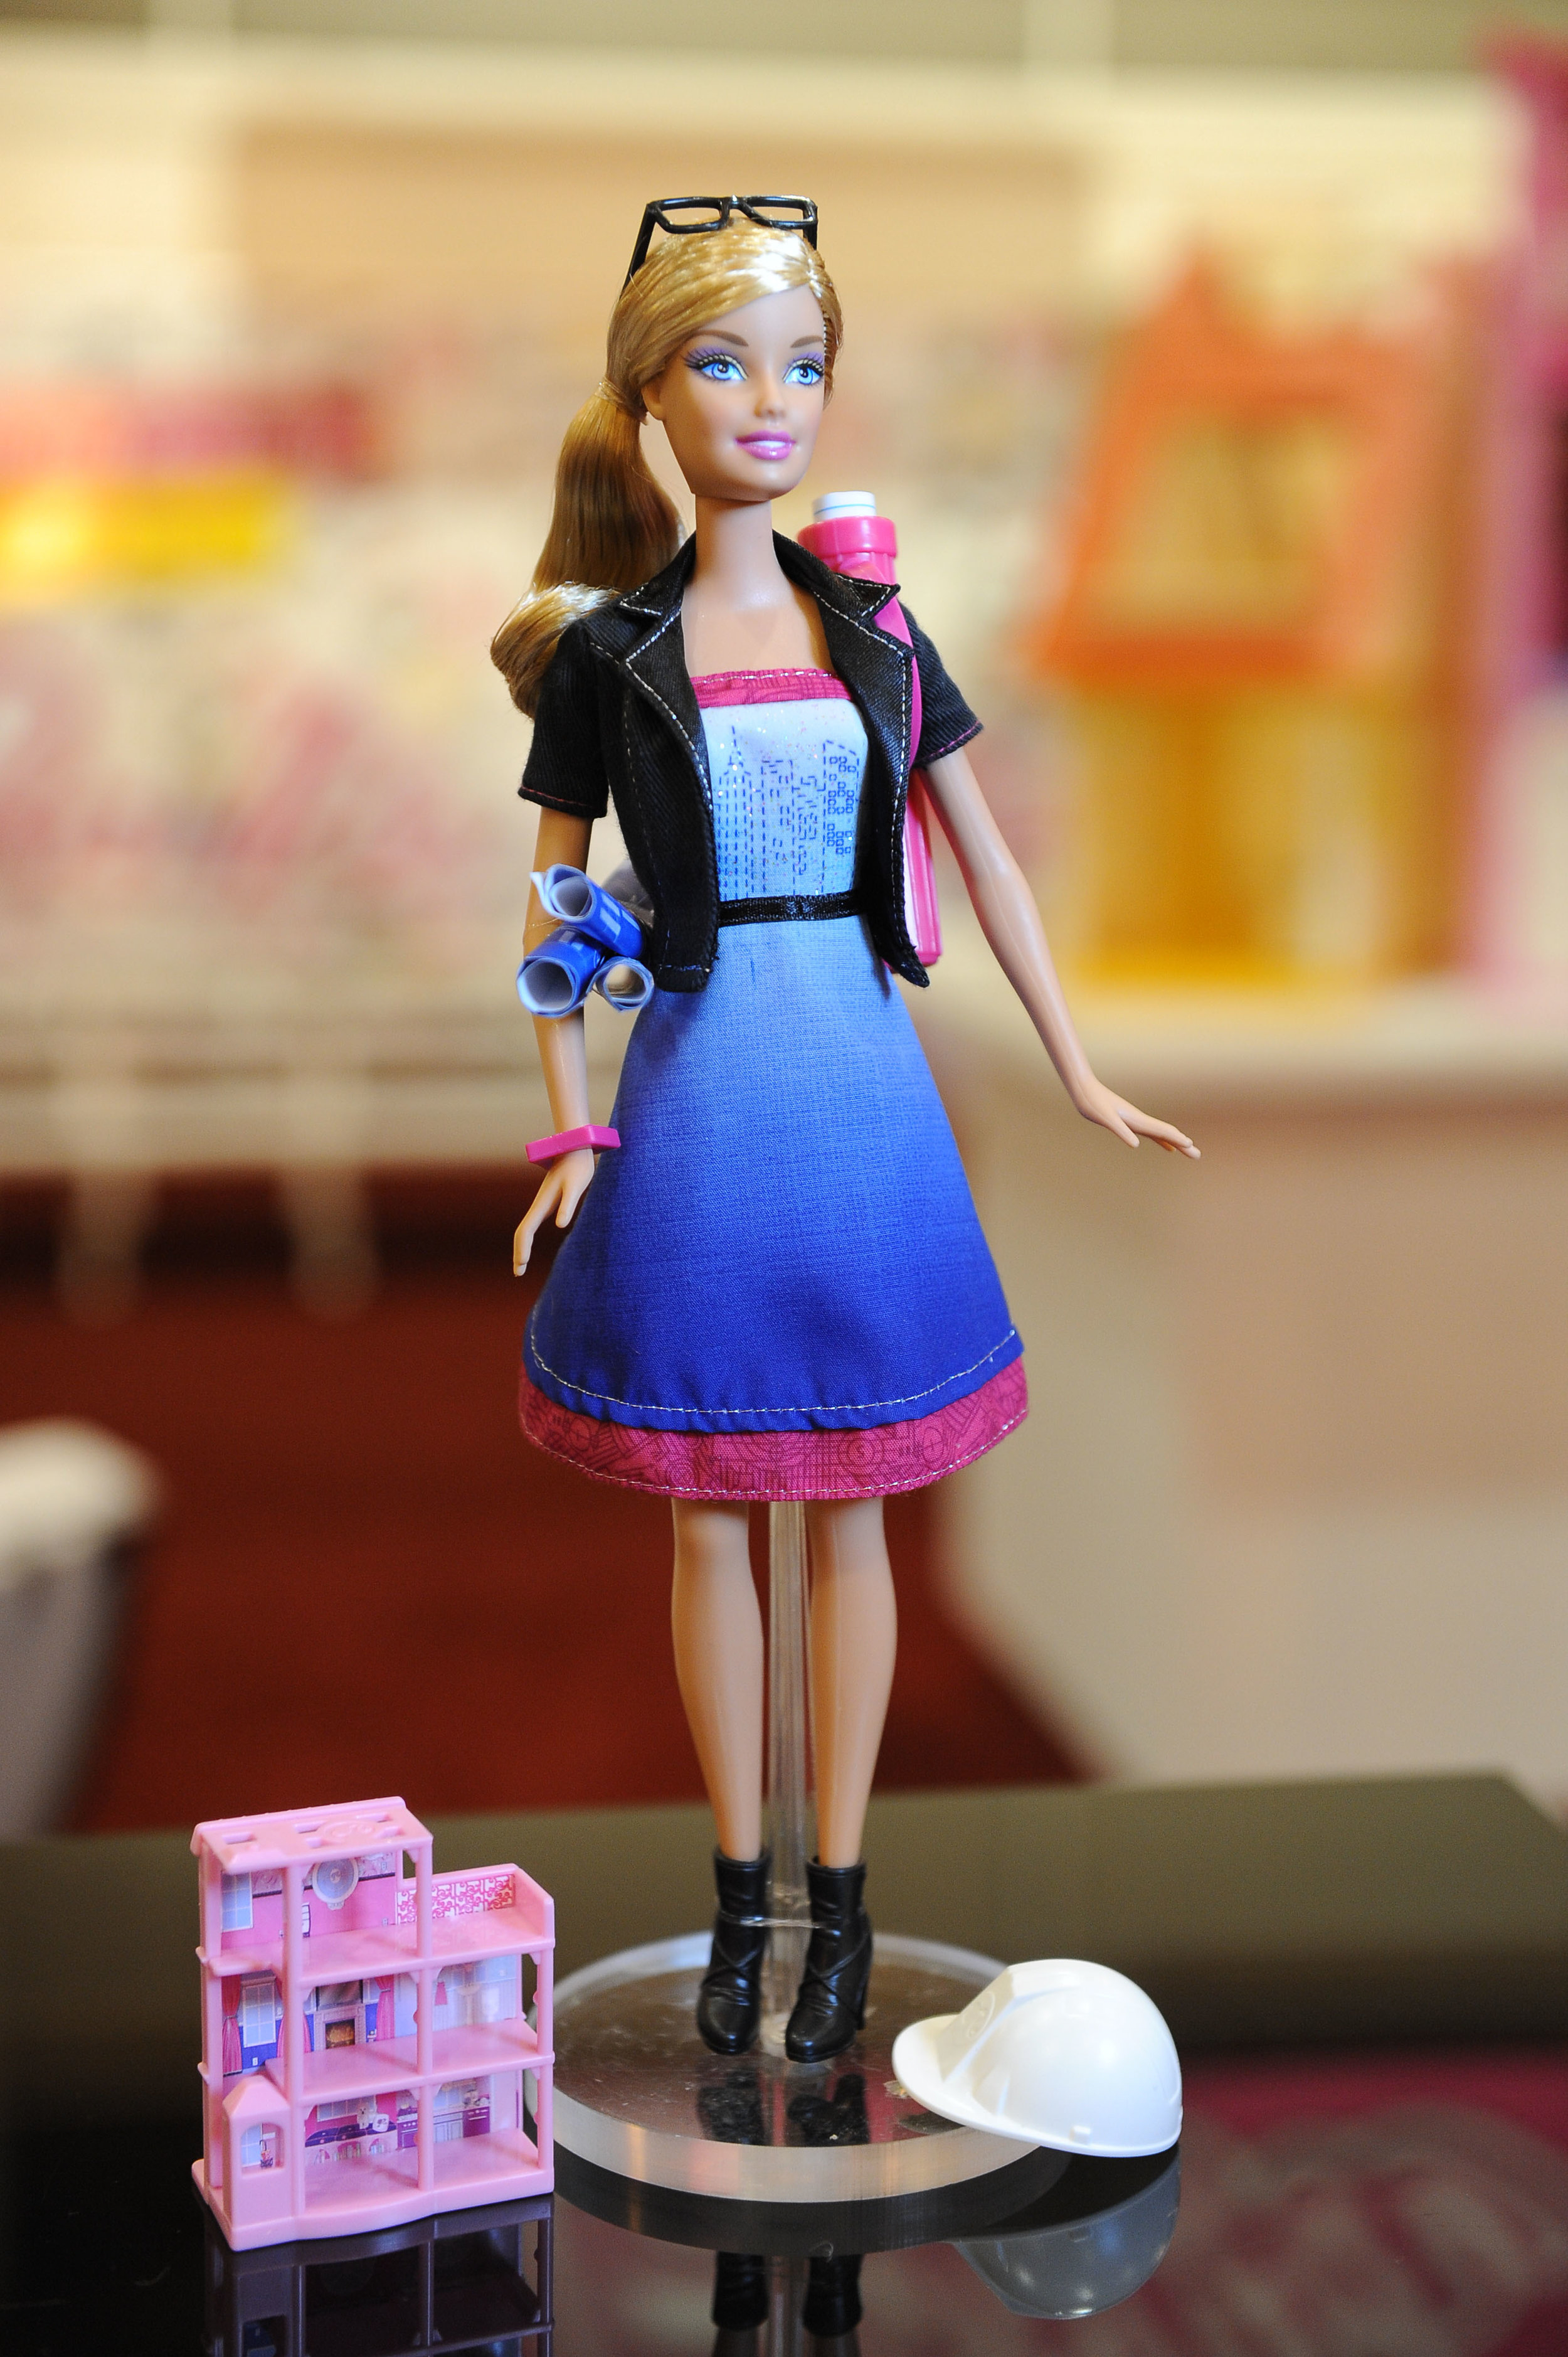 Architect Barbie on display at the AIA convention in New Orleans, May 2011.